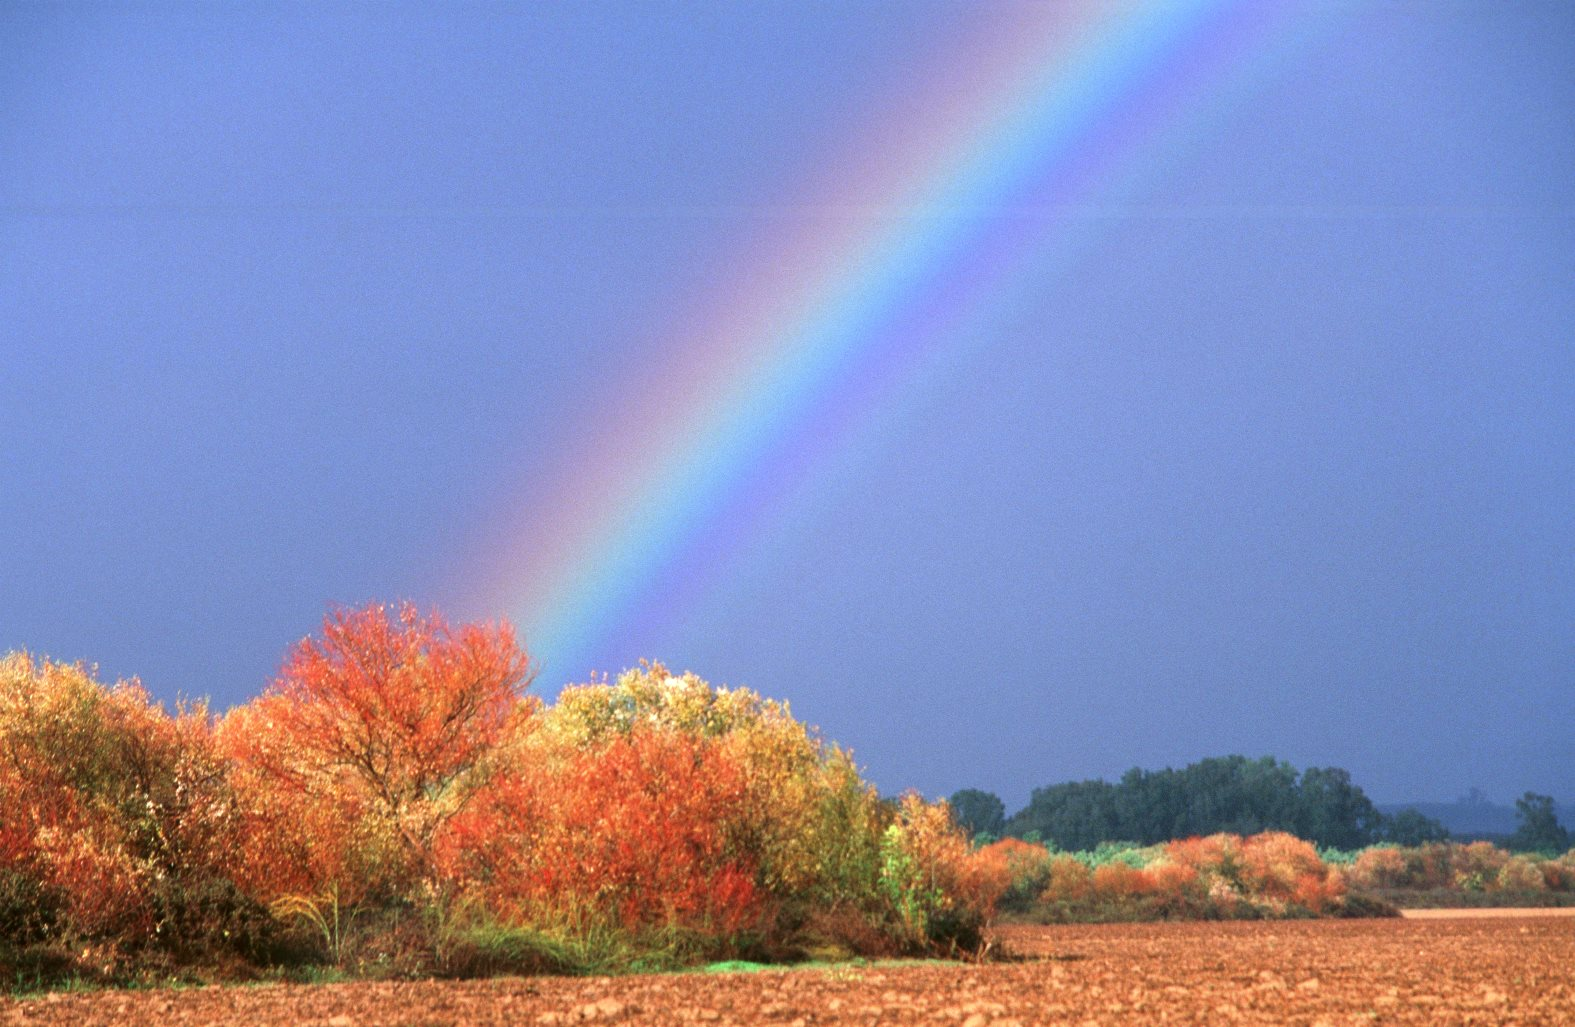 A rainbow stands behind autumn trees in Tel Dan Nature Reserve in northern Israel. Photo by Doron Horowitz/FLASH90